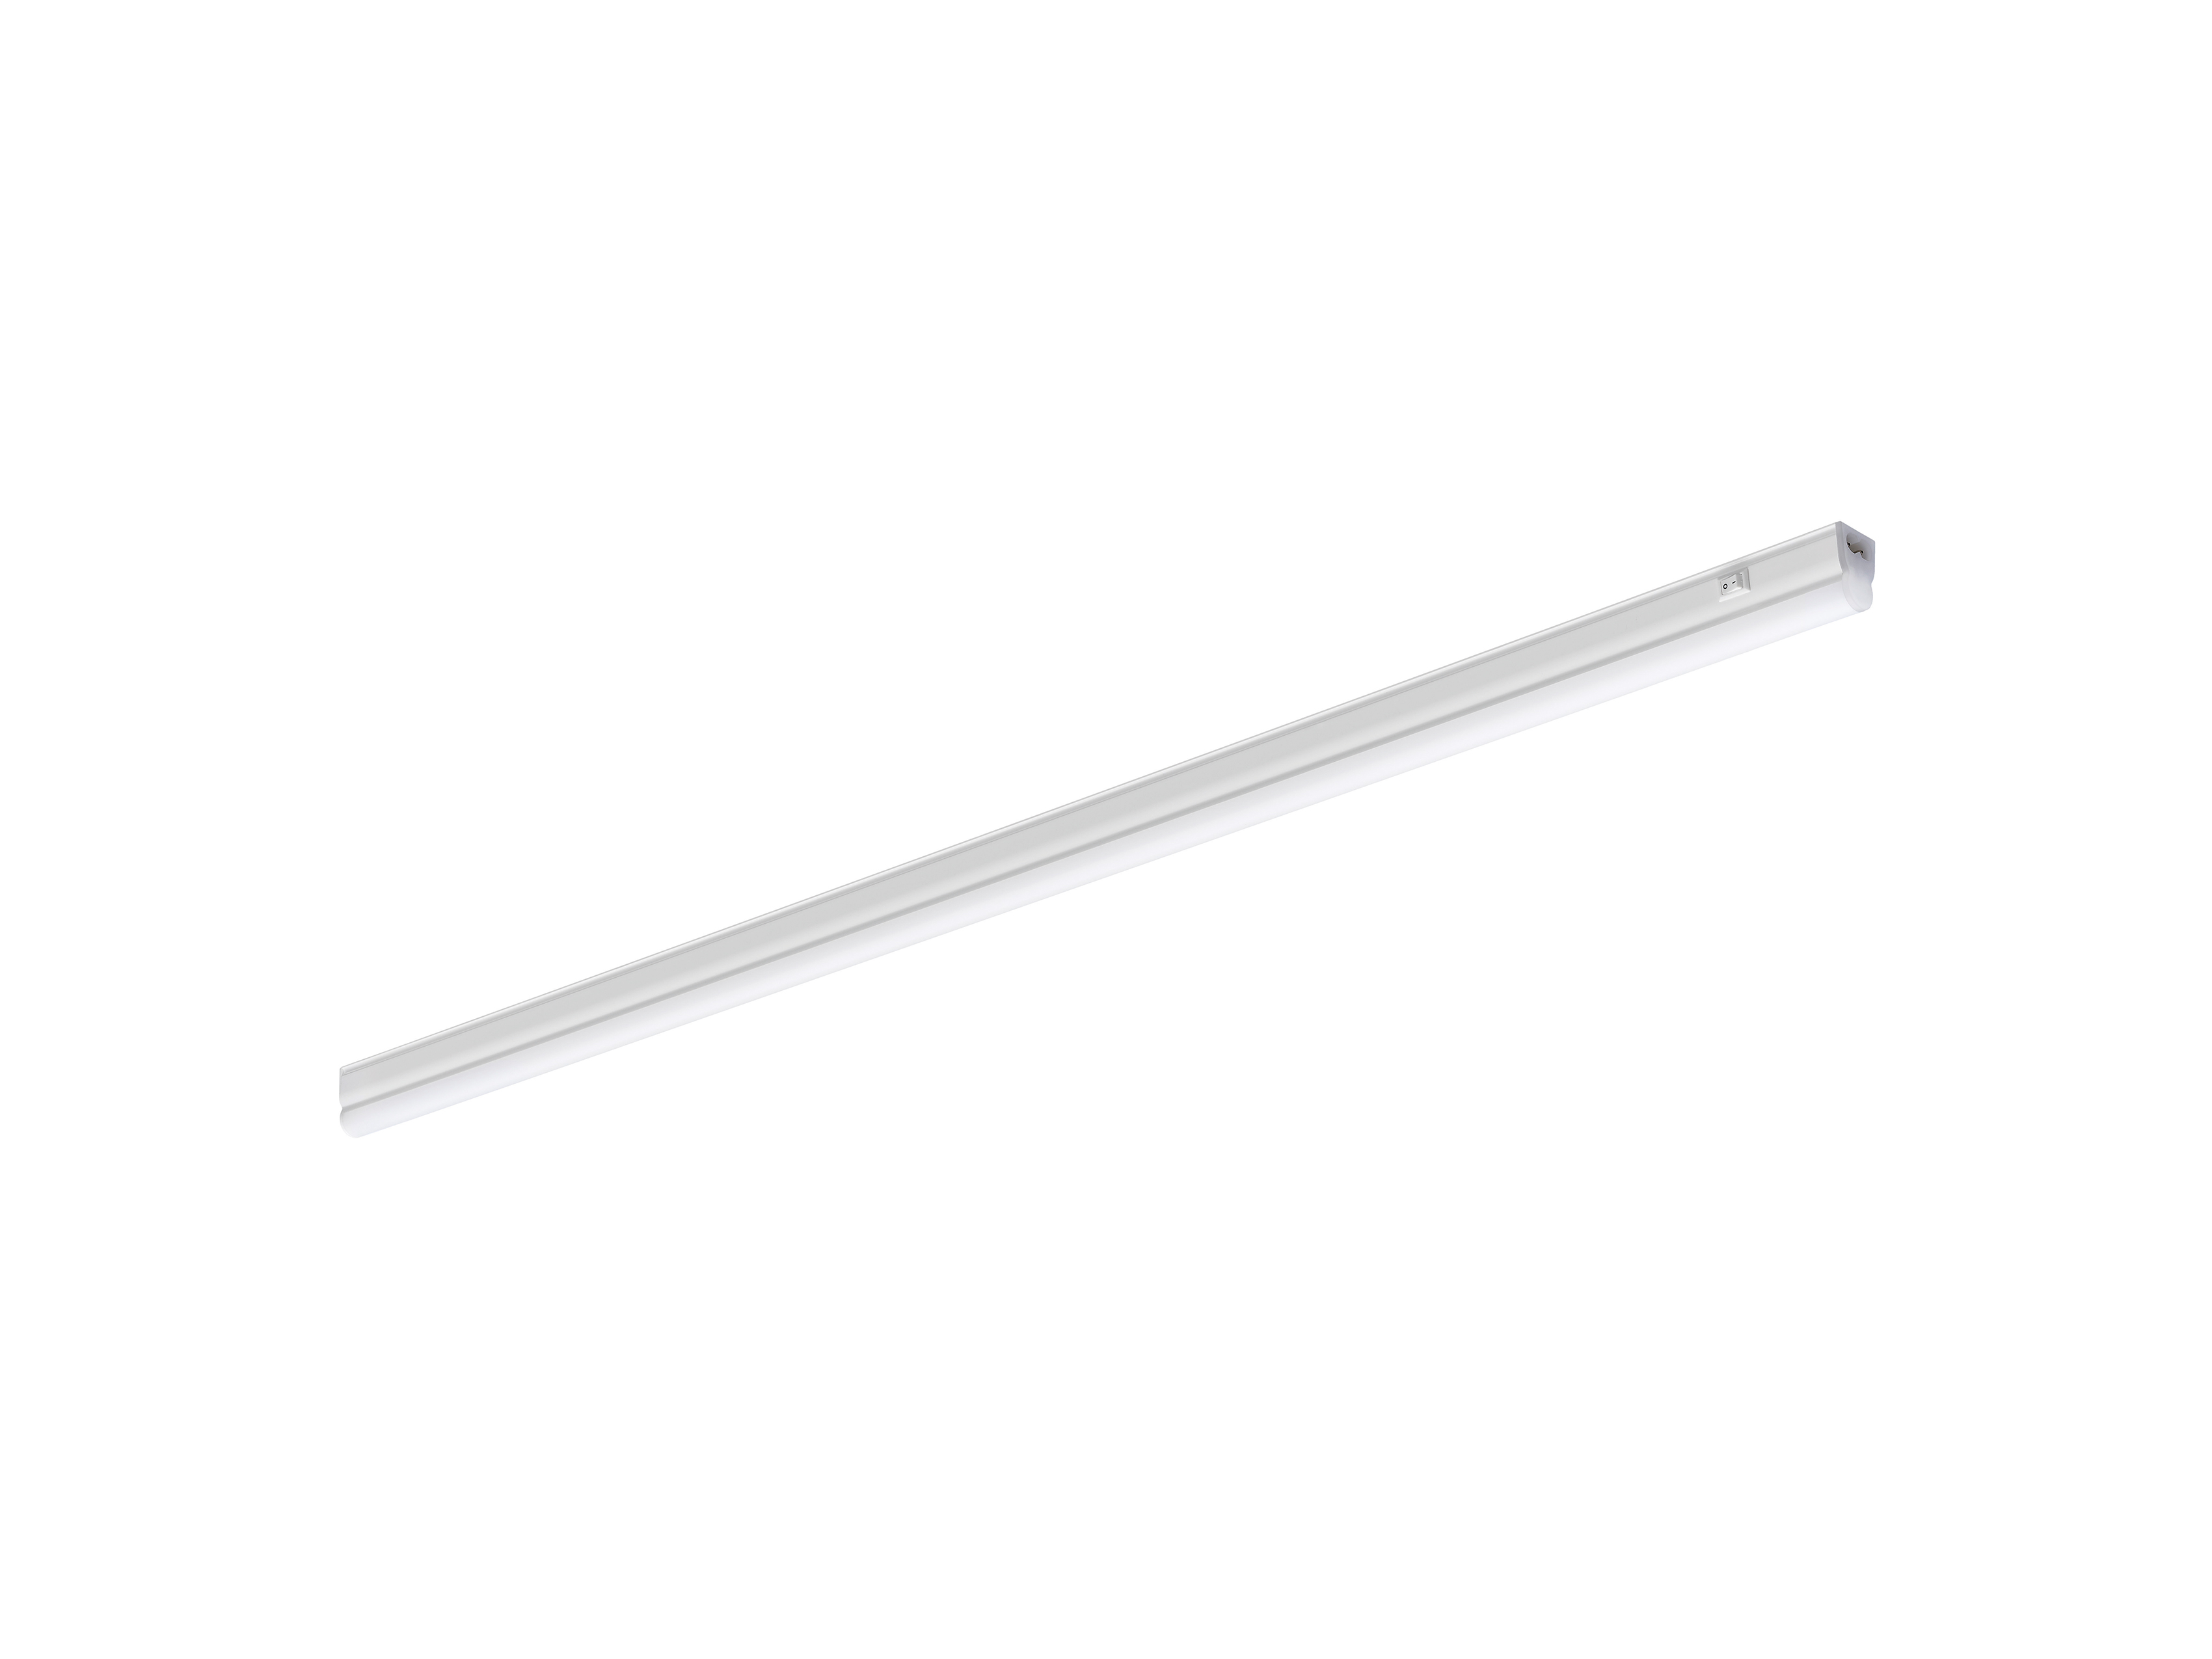 Sylvania PIPE LED under cabinet light 4W warm white 300mm length